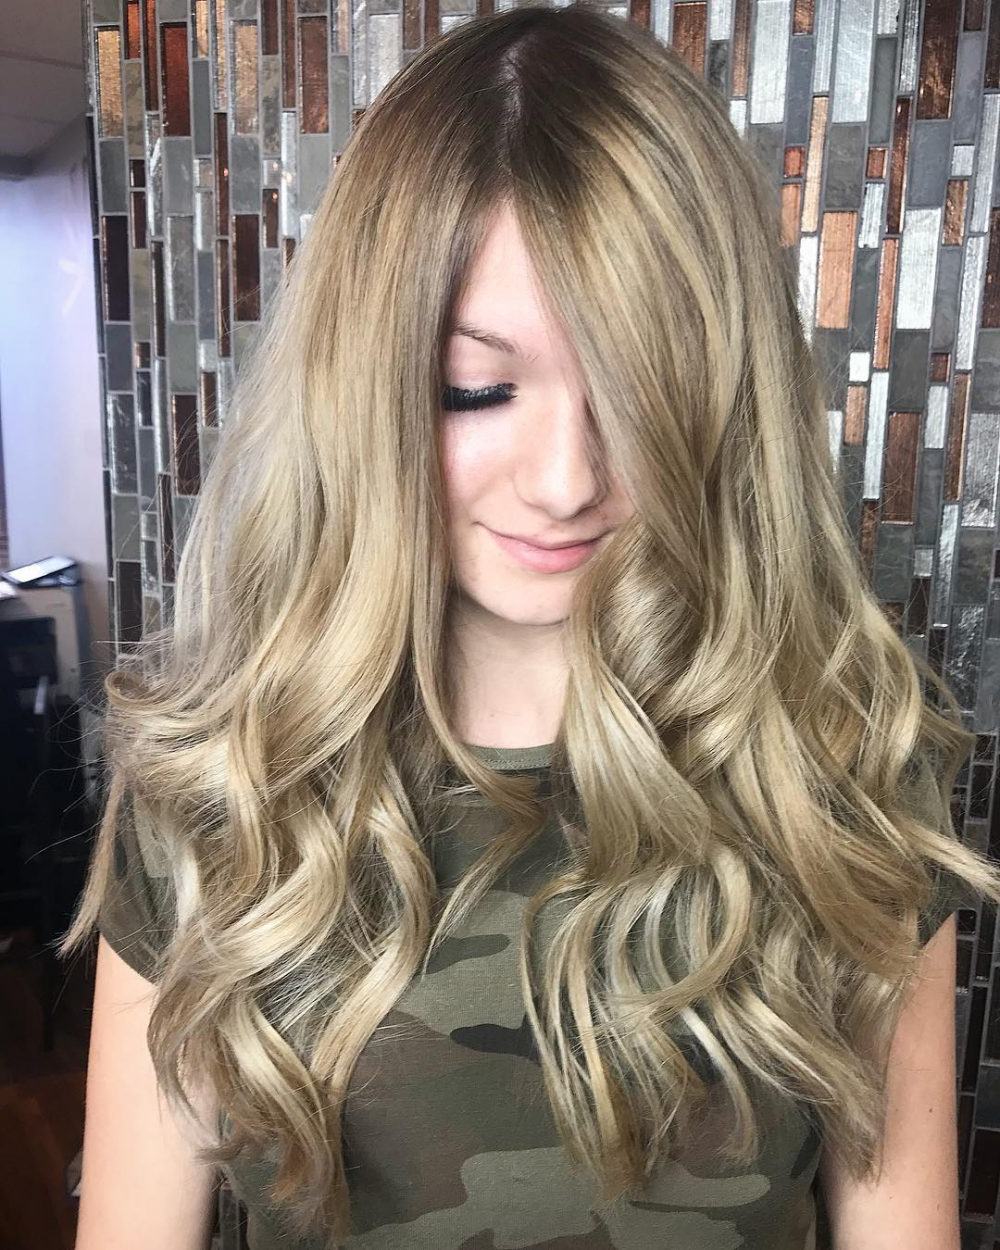 Best And Newest Messy Loose Curls Long Hairstyles With Voluminous Bangs With Regard To 24 Long Wavy Hair Ideas That Are Freaking Hot In (View 10 of 20)